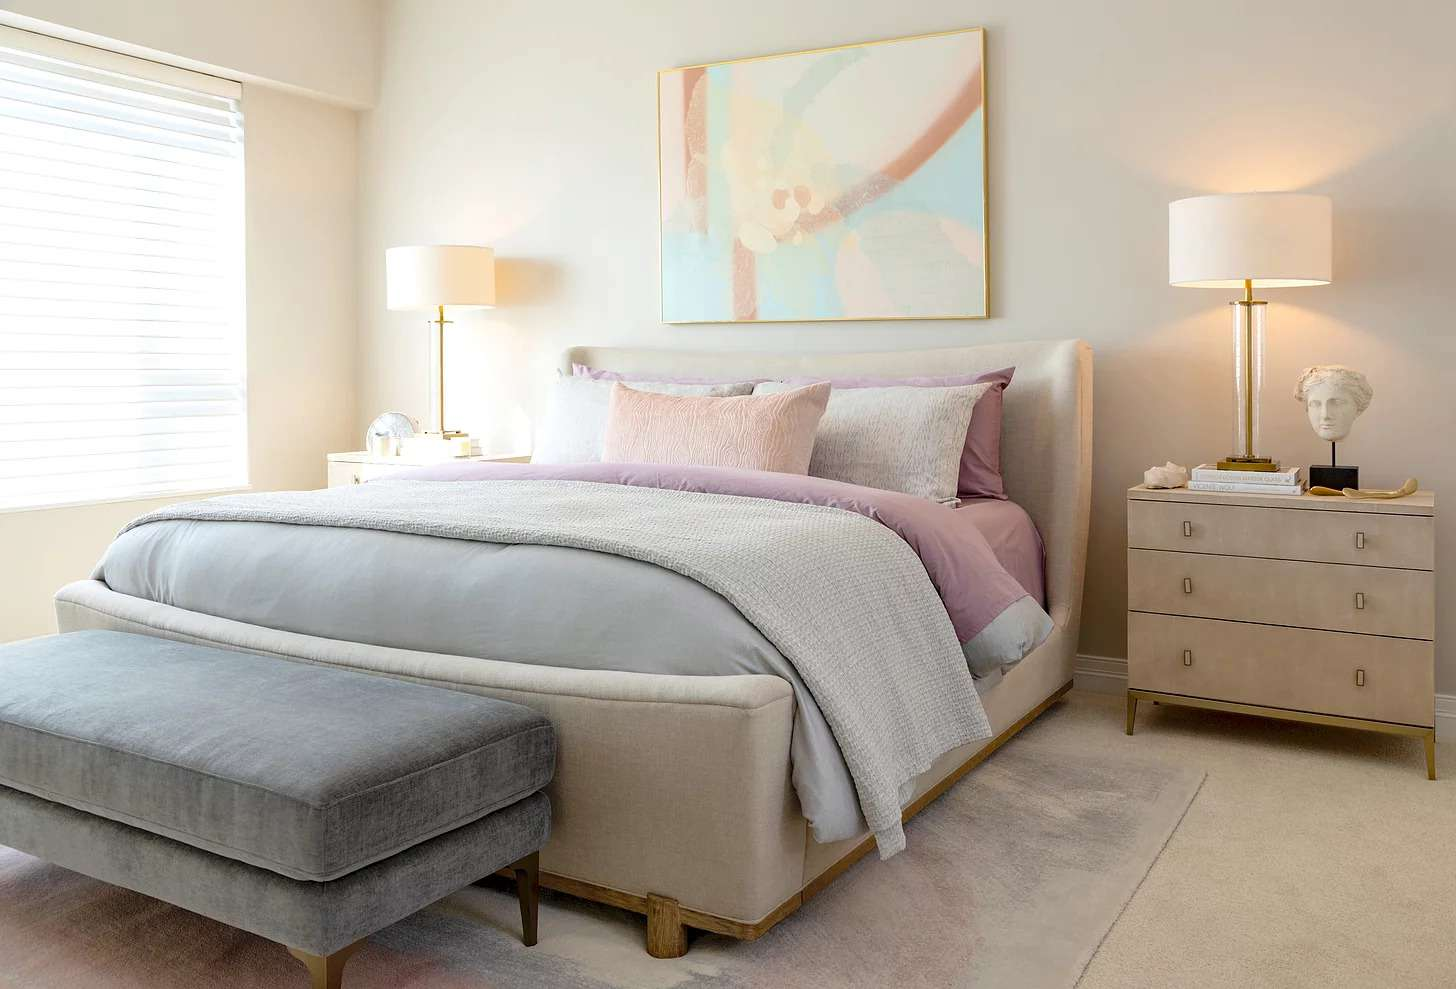 A modern bedroom with pink accents.